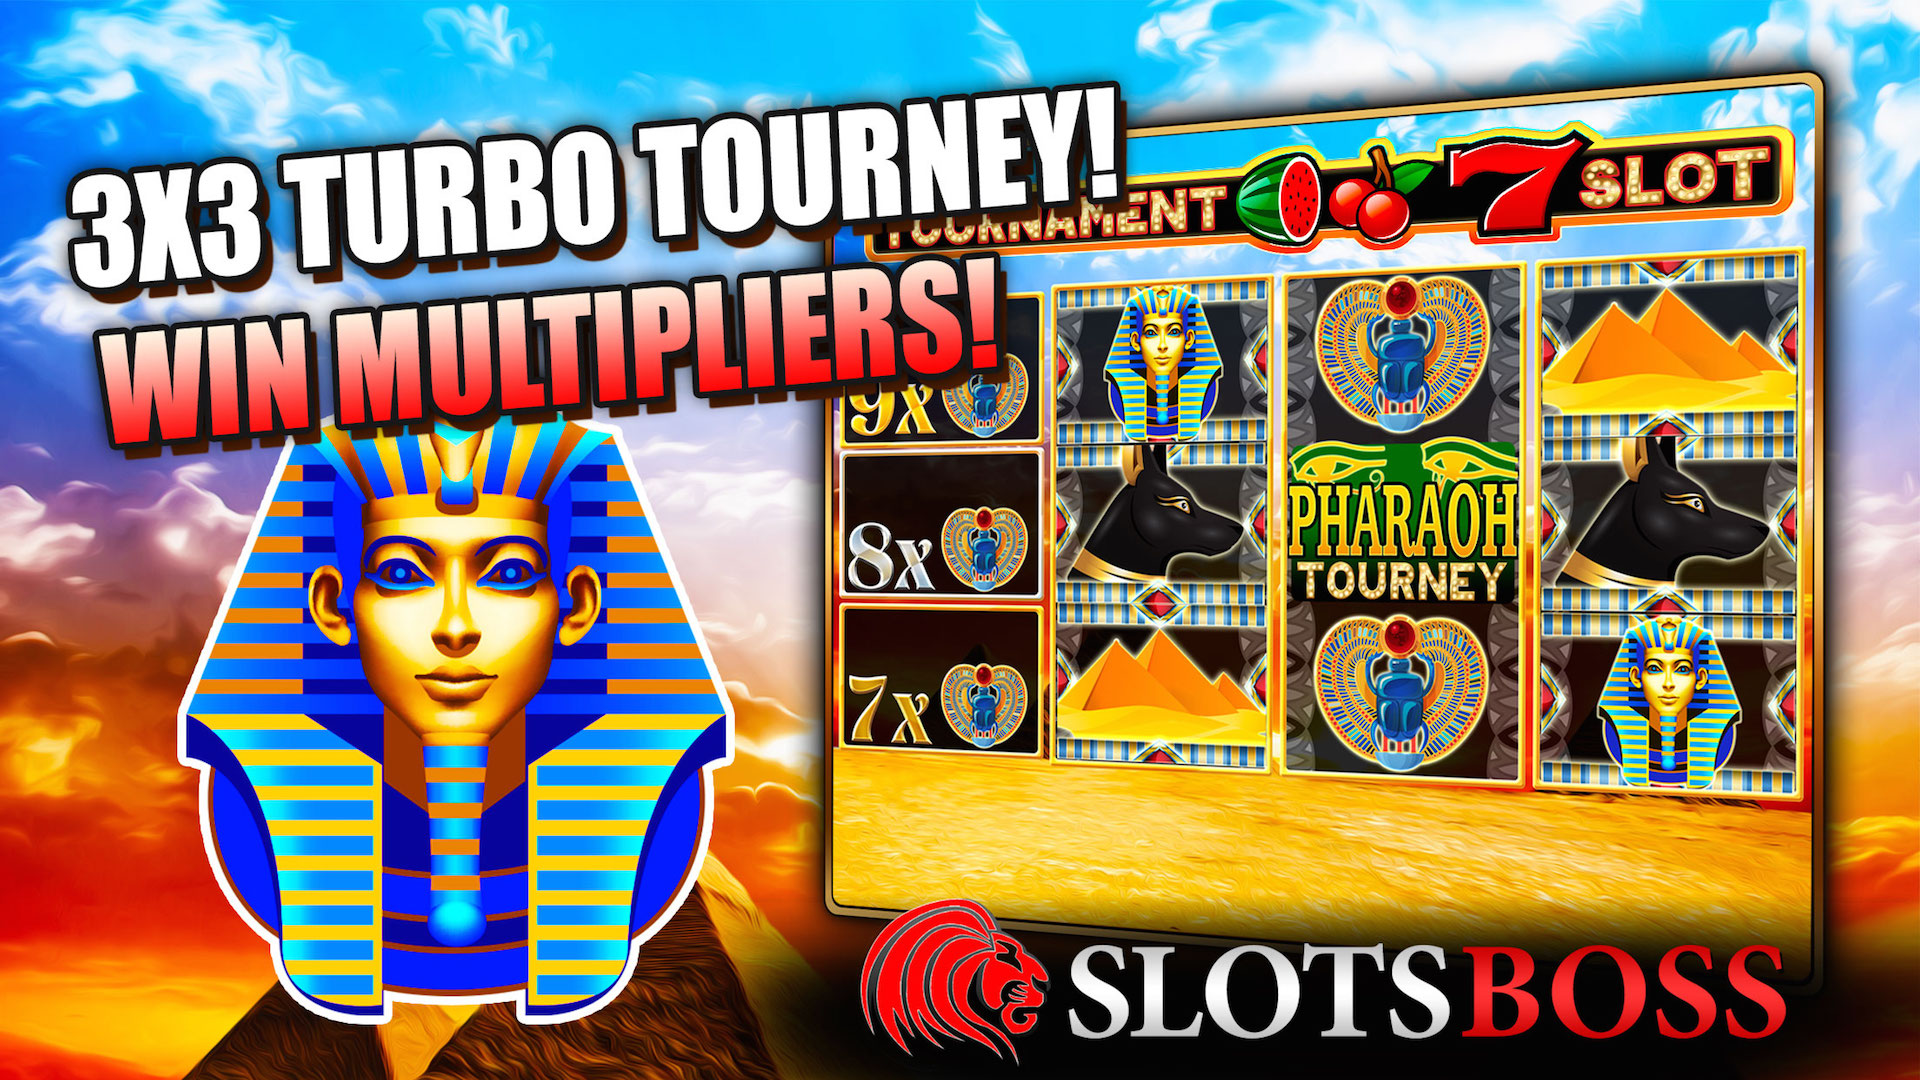 slots tournament | Euro Palace Casino Blog